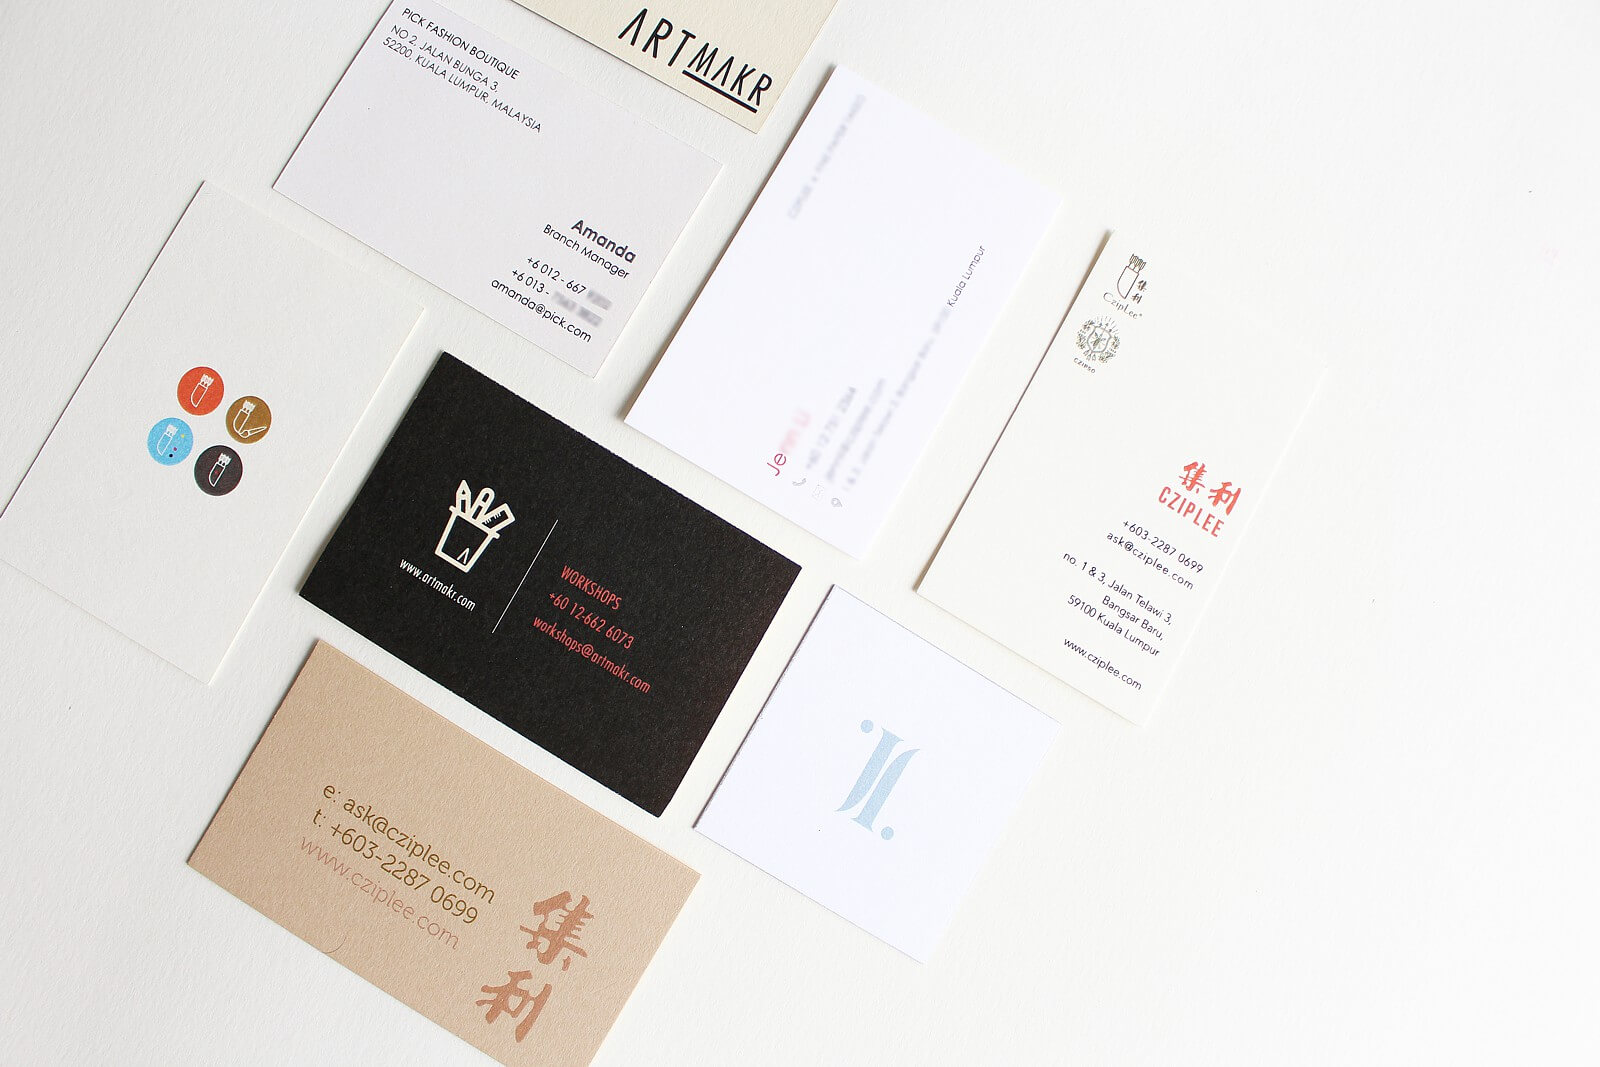 Create Your Own Business Card Template Cards Staples App intended for Staples Business Card Template Word